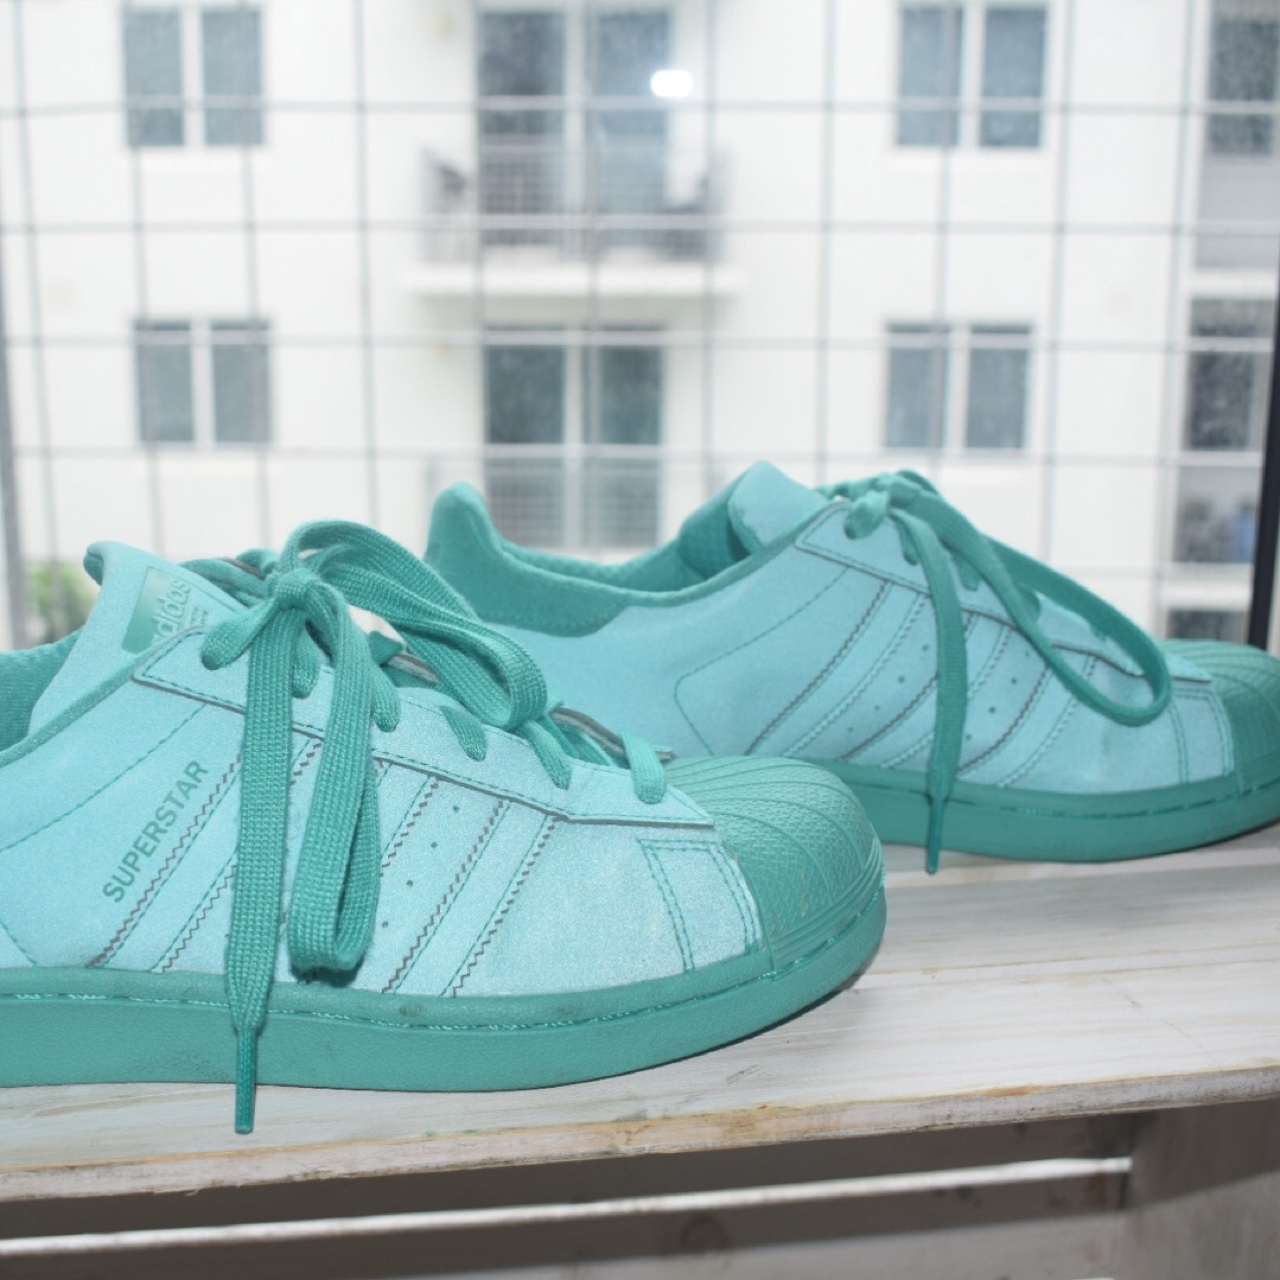 EXCLUSIVE COLOR!! Adidas turquoise